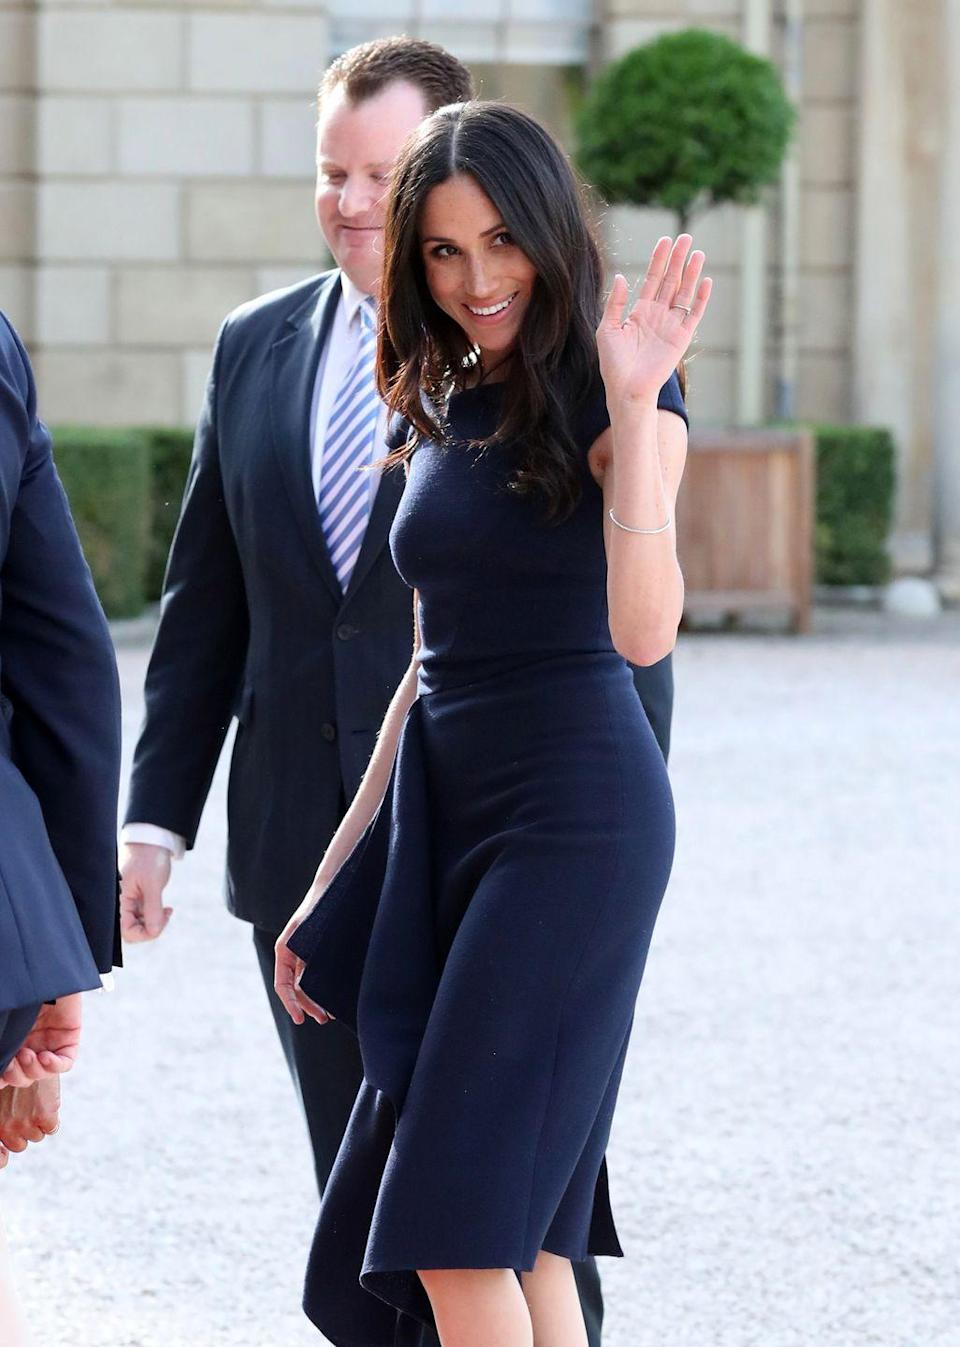 """<p>As for Meghan, the <a href=""""https://www.cosmopolitan.com/entertainment/a20746787/meghan-markle-doria-ragland-royal-wedding-rehearsal/"""" rel=""""nofollow noopener"""" target=""""_blank"""" data-ylk=""""slk:night before her wedding"""" class=""""link rapid-noclick-resp"""">night before her wedding</a> she opted for a similar navy dress. Classic.</p>"""